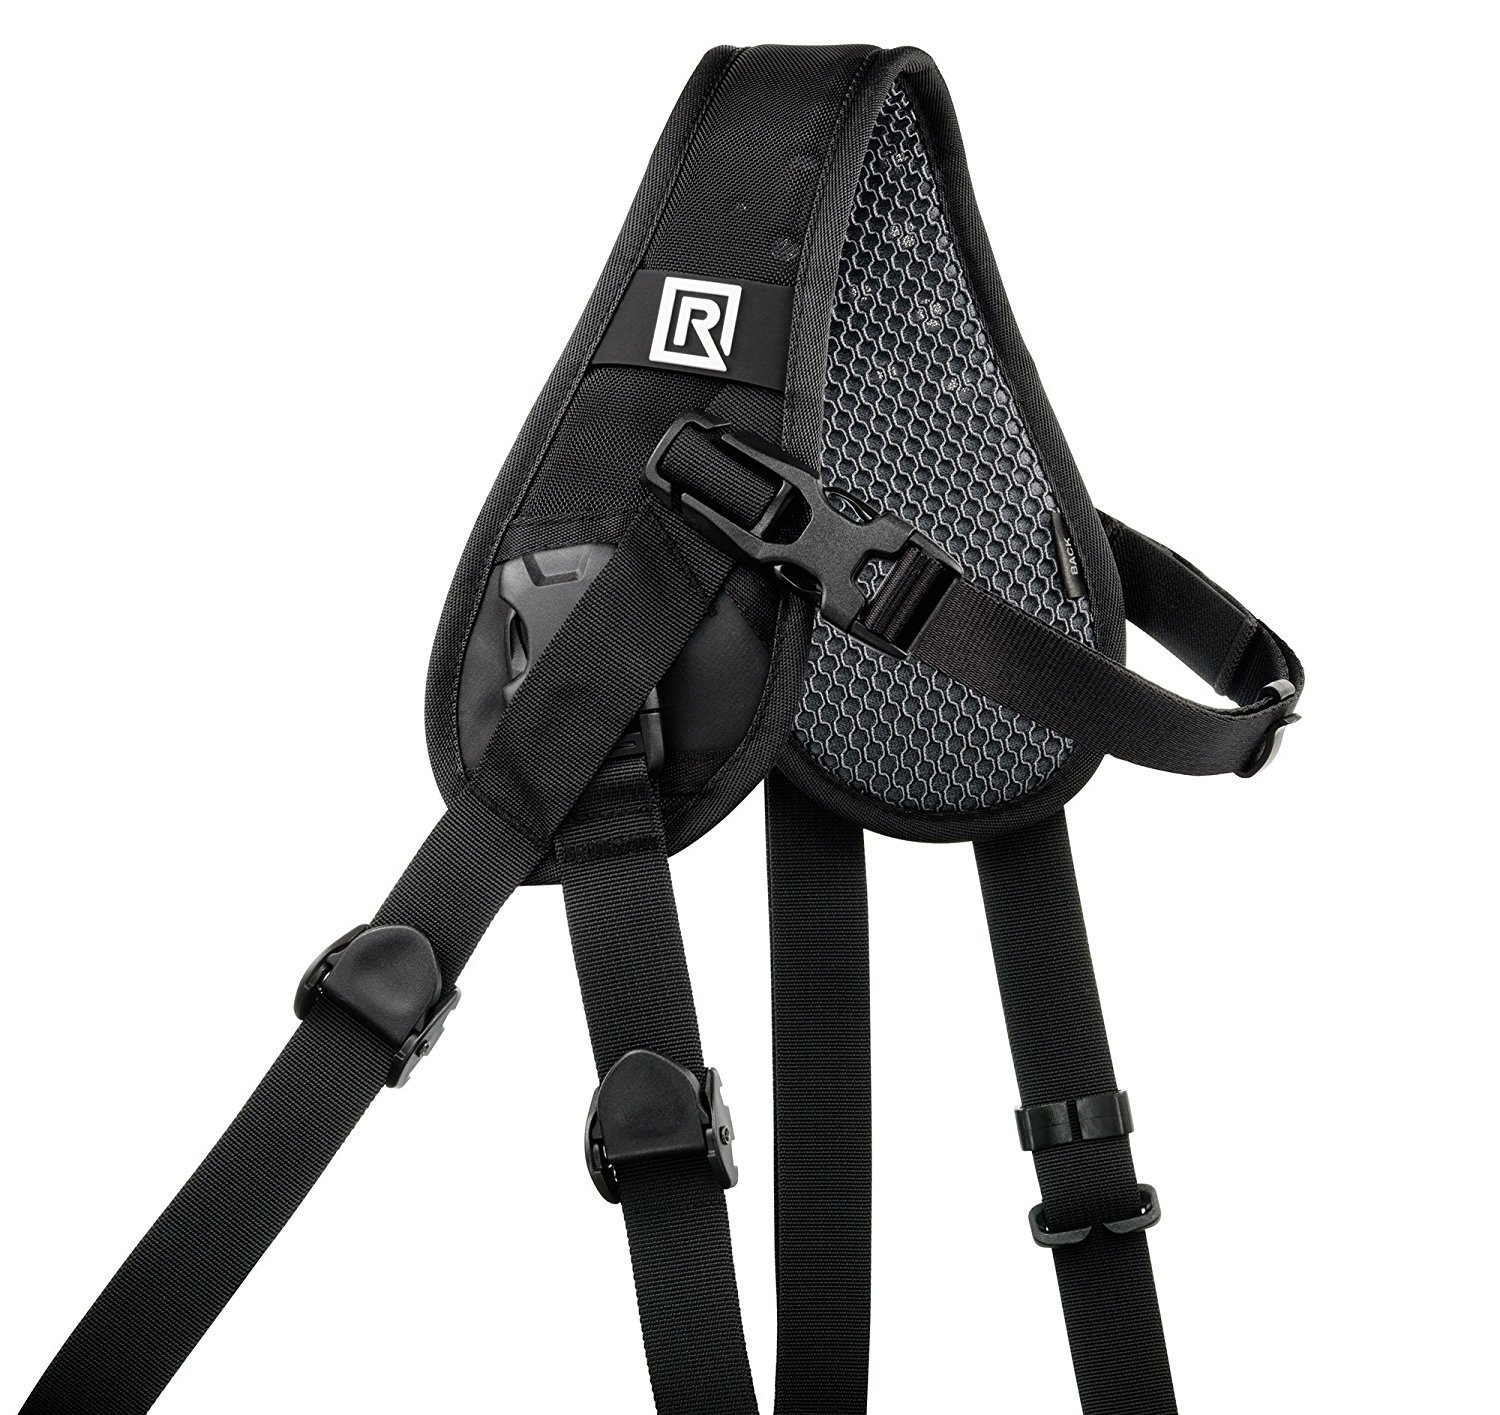 Panasonic HC-V750 Shock Absorbing 44 Inch Classic Neoprene Strap by Digital Nw Direct Micro Fiber Cleaning Cloth